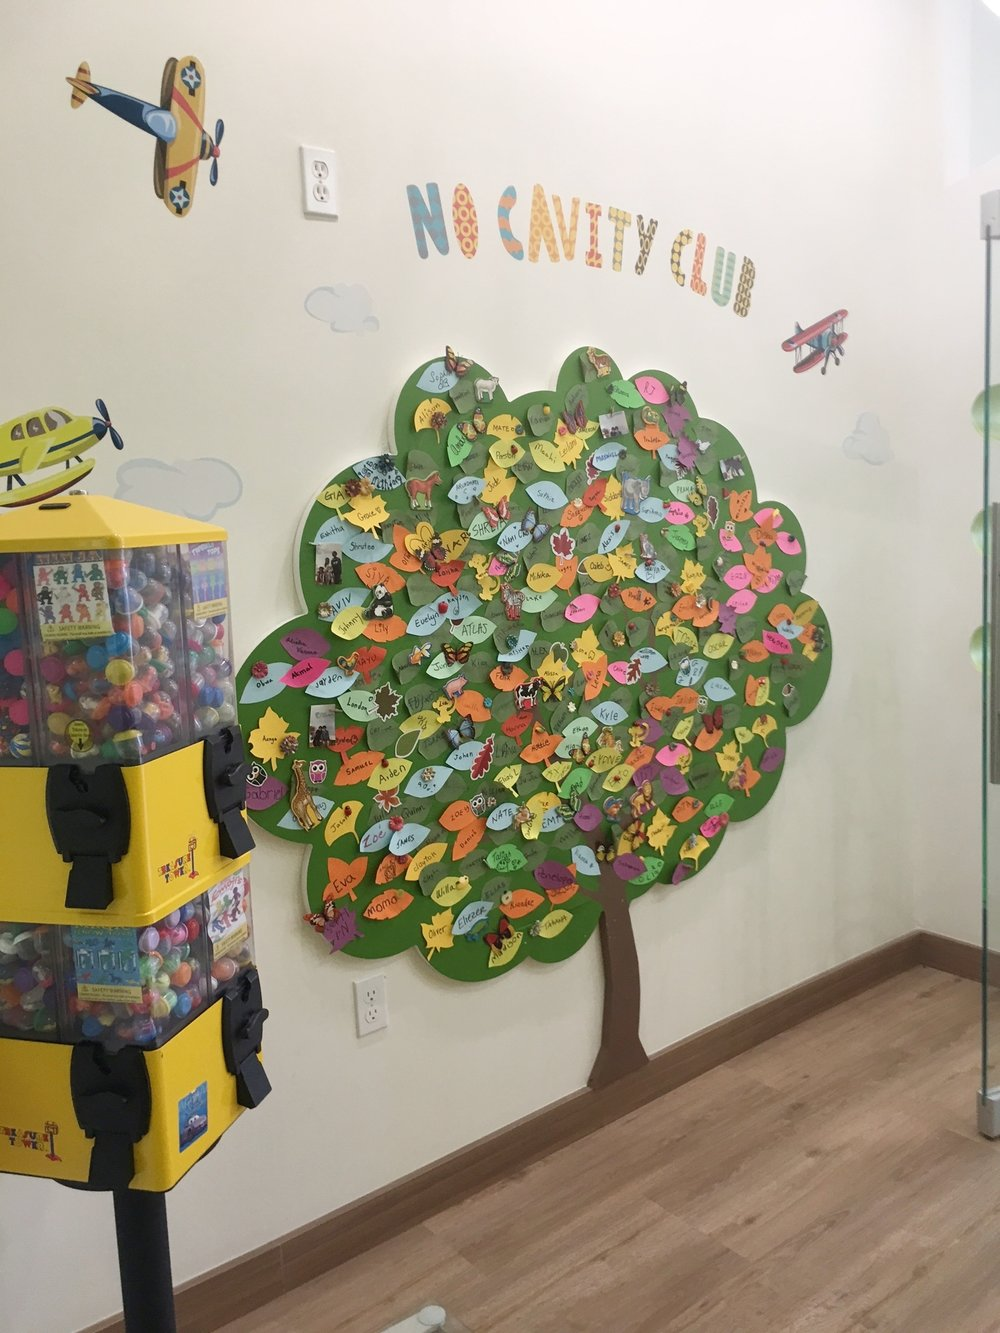 "Toy Tower and ""No Cavity Club"" Tree"